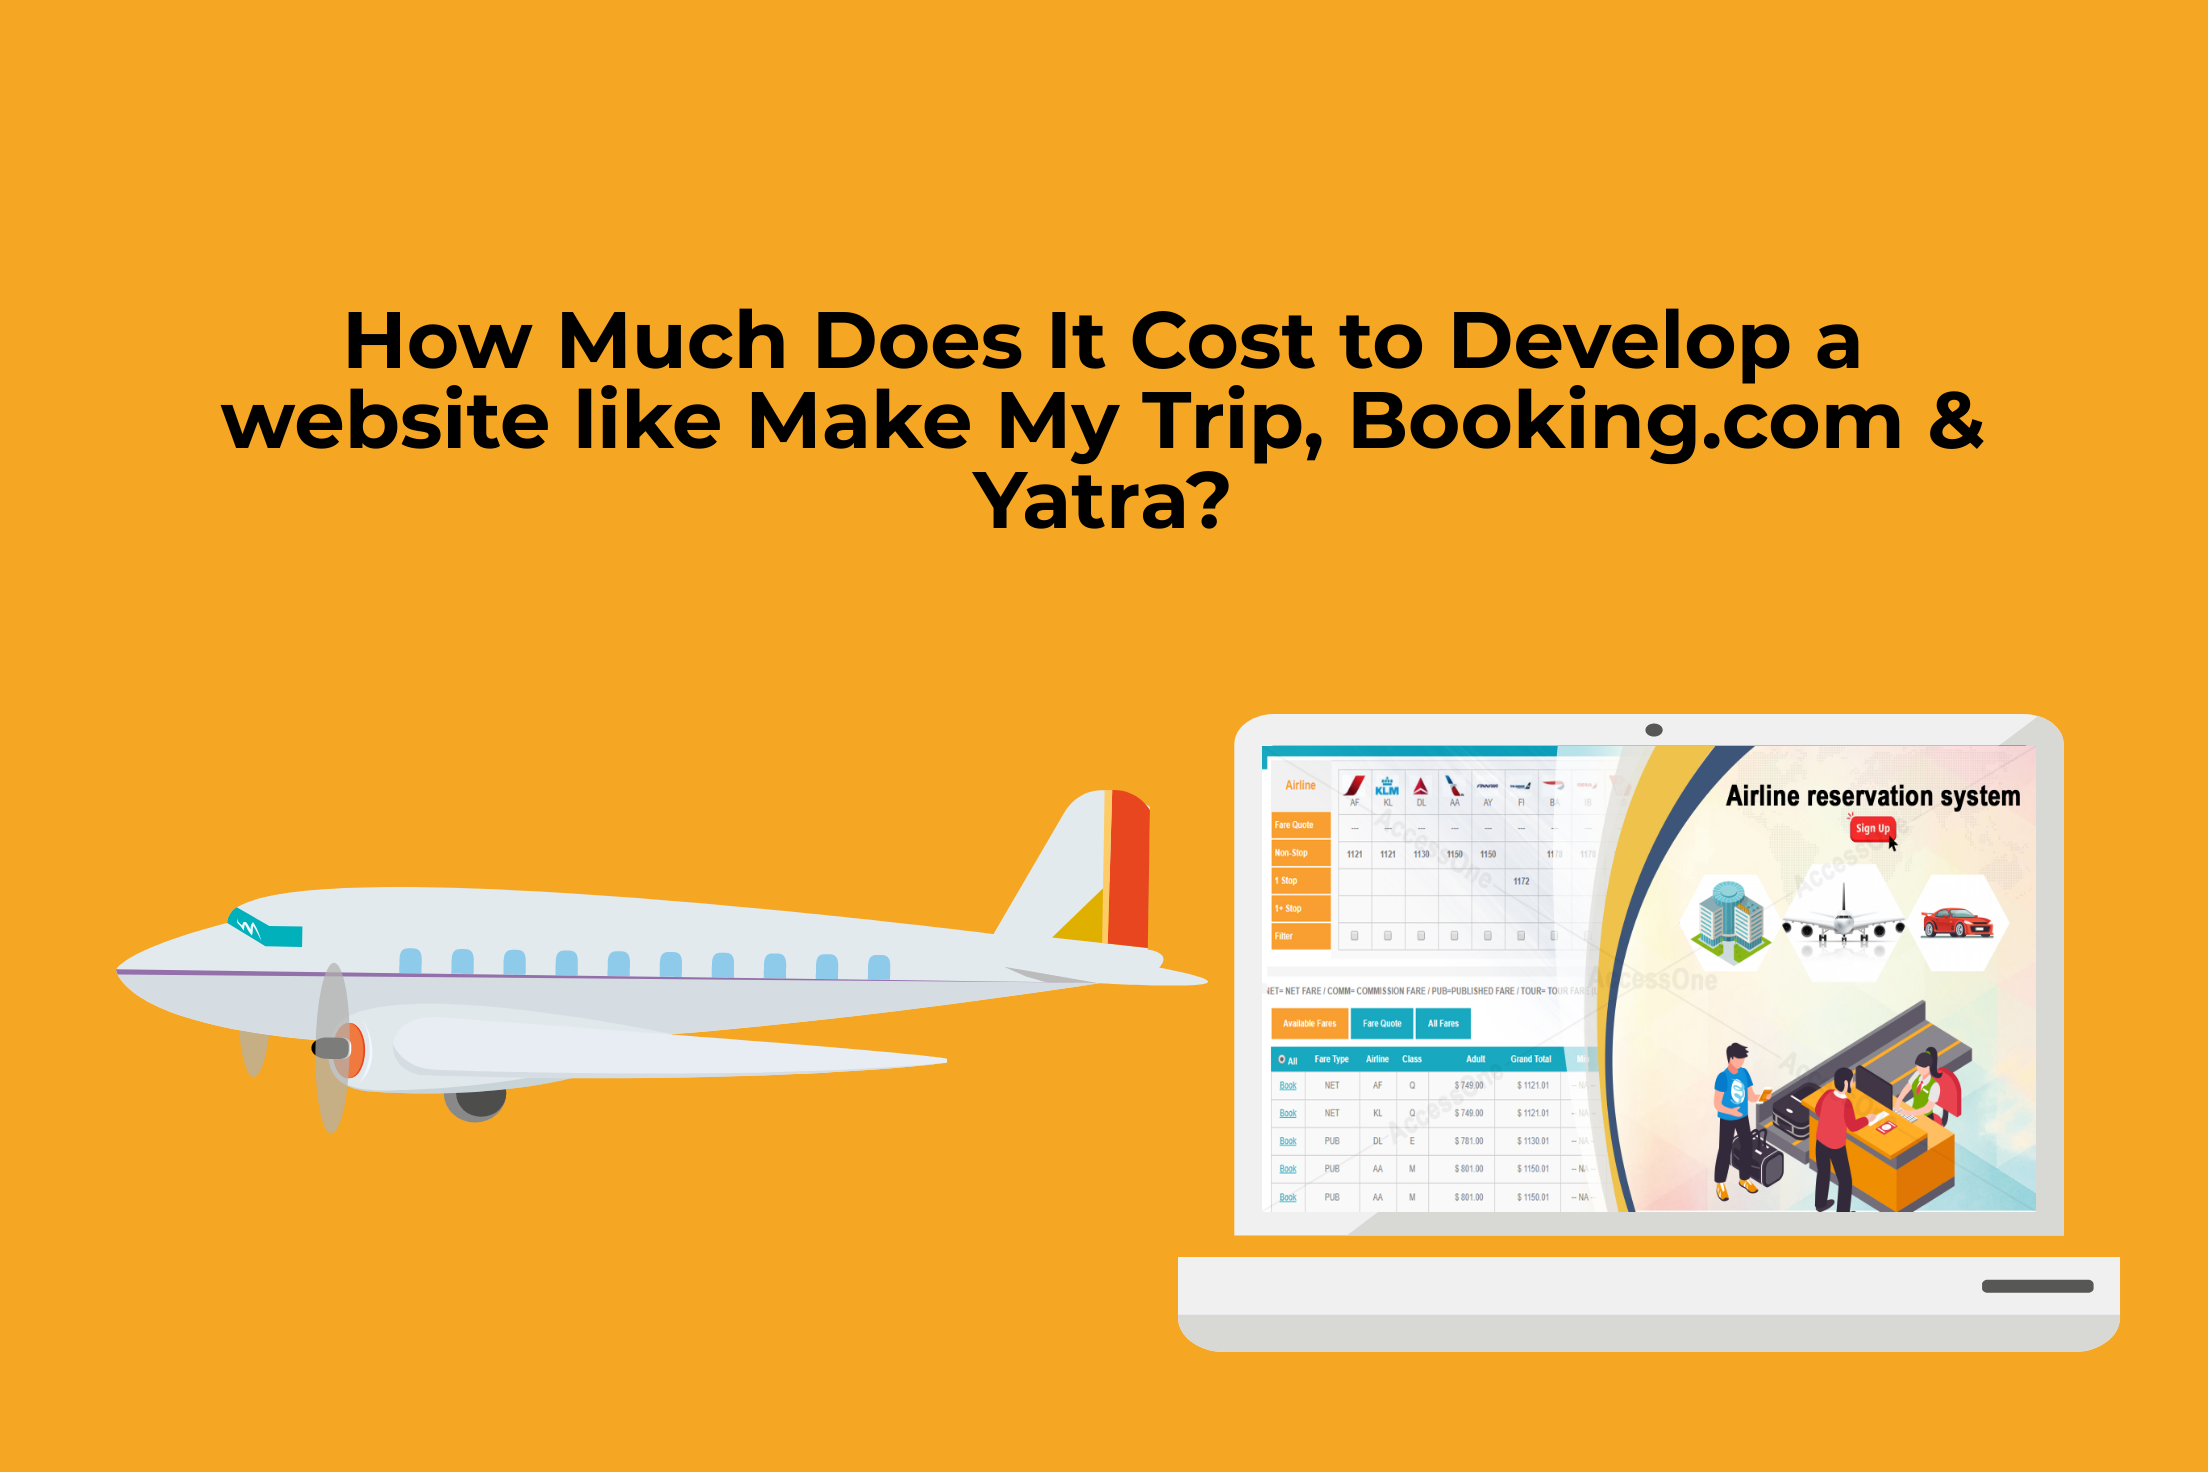 How Much Does It Cost to Develop a website like Make My Trip, Booking.com & Yatra?